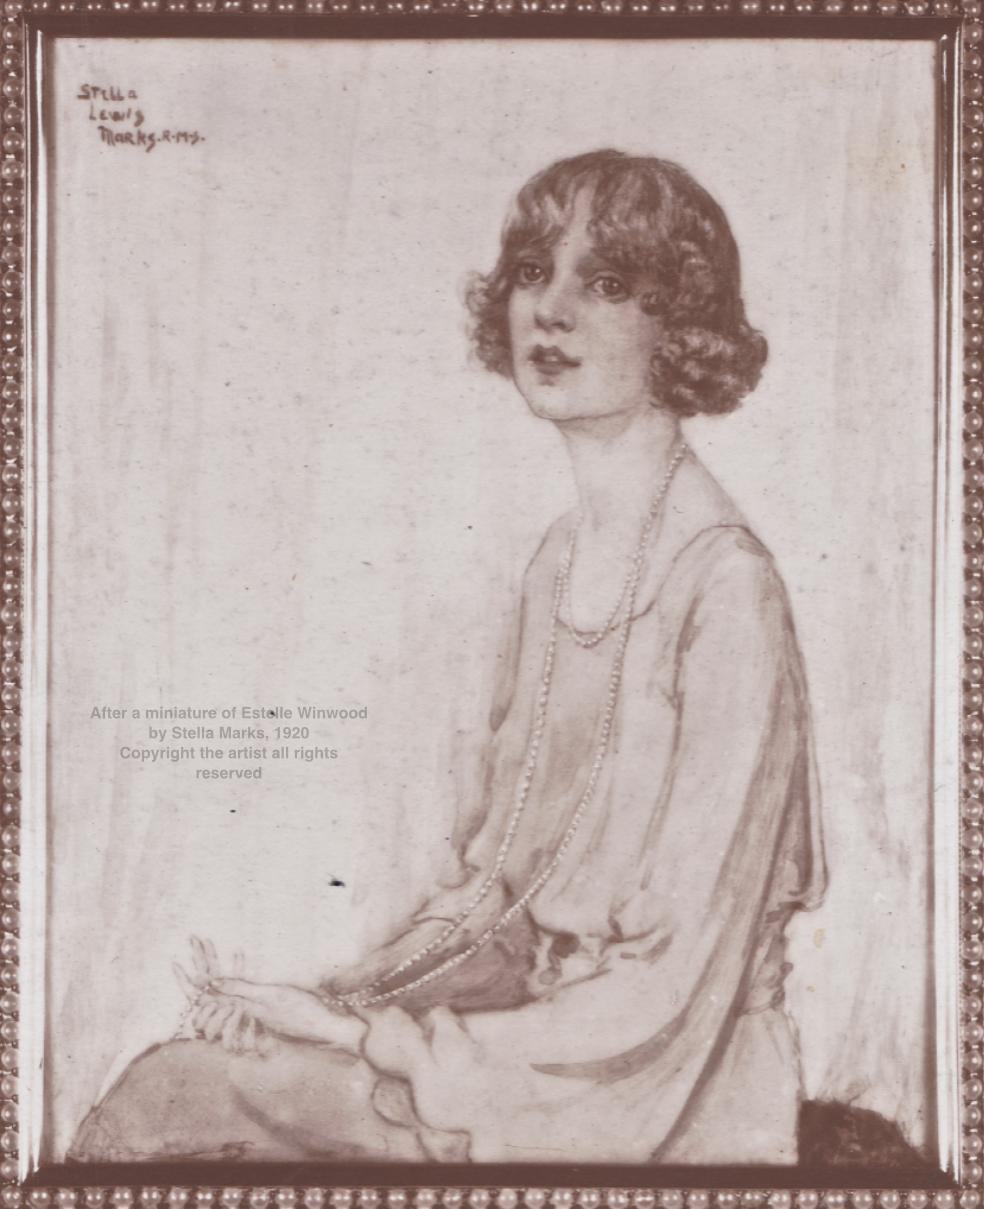 After a miniature of Estelle Winwood by Stella Marks, 1920. Copyright the artist all rights reserved